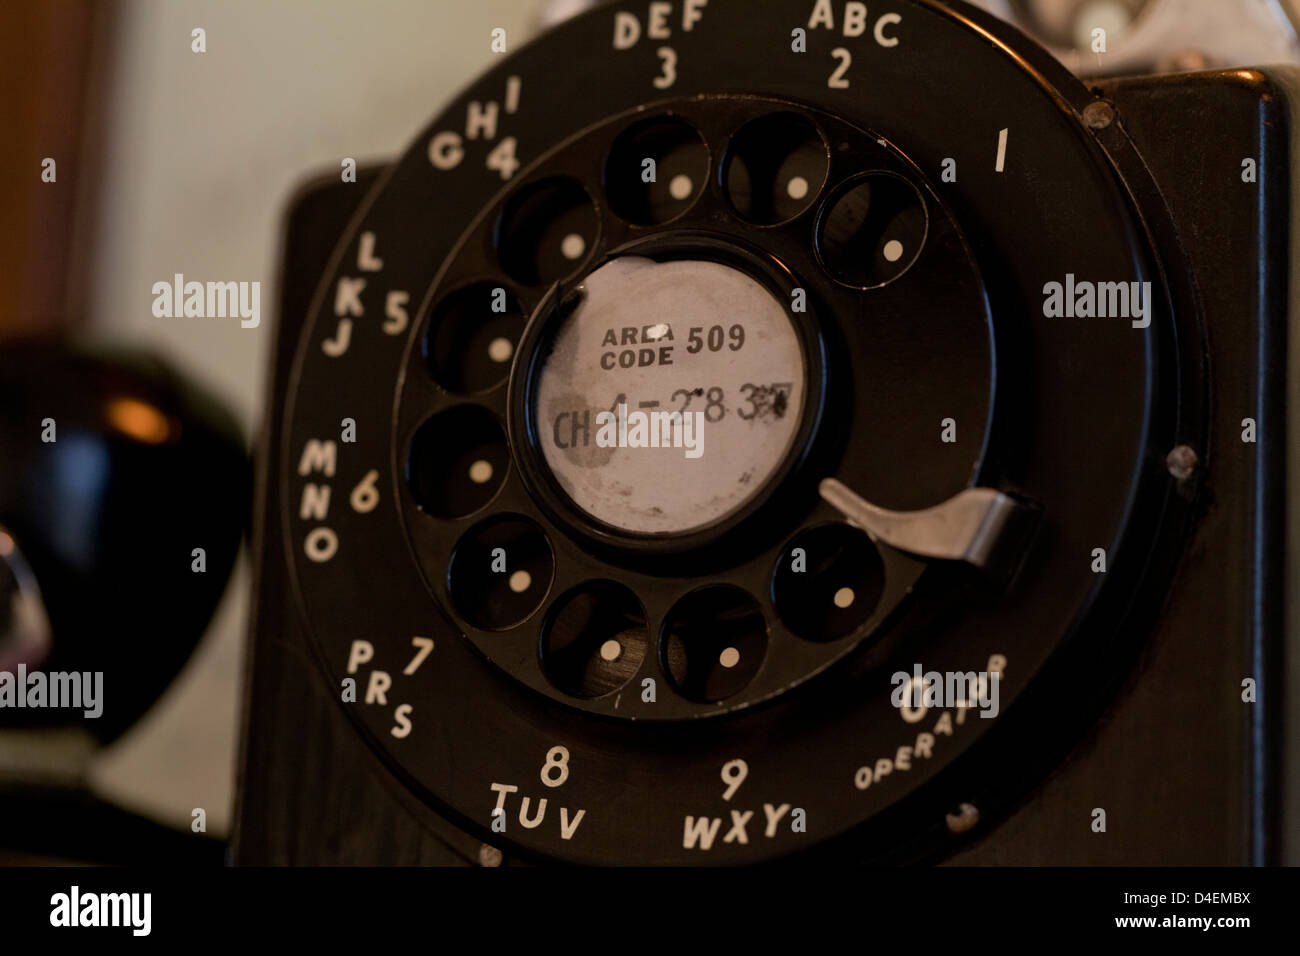 Vintage pay phone dial - Stock Image